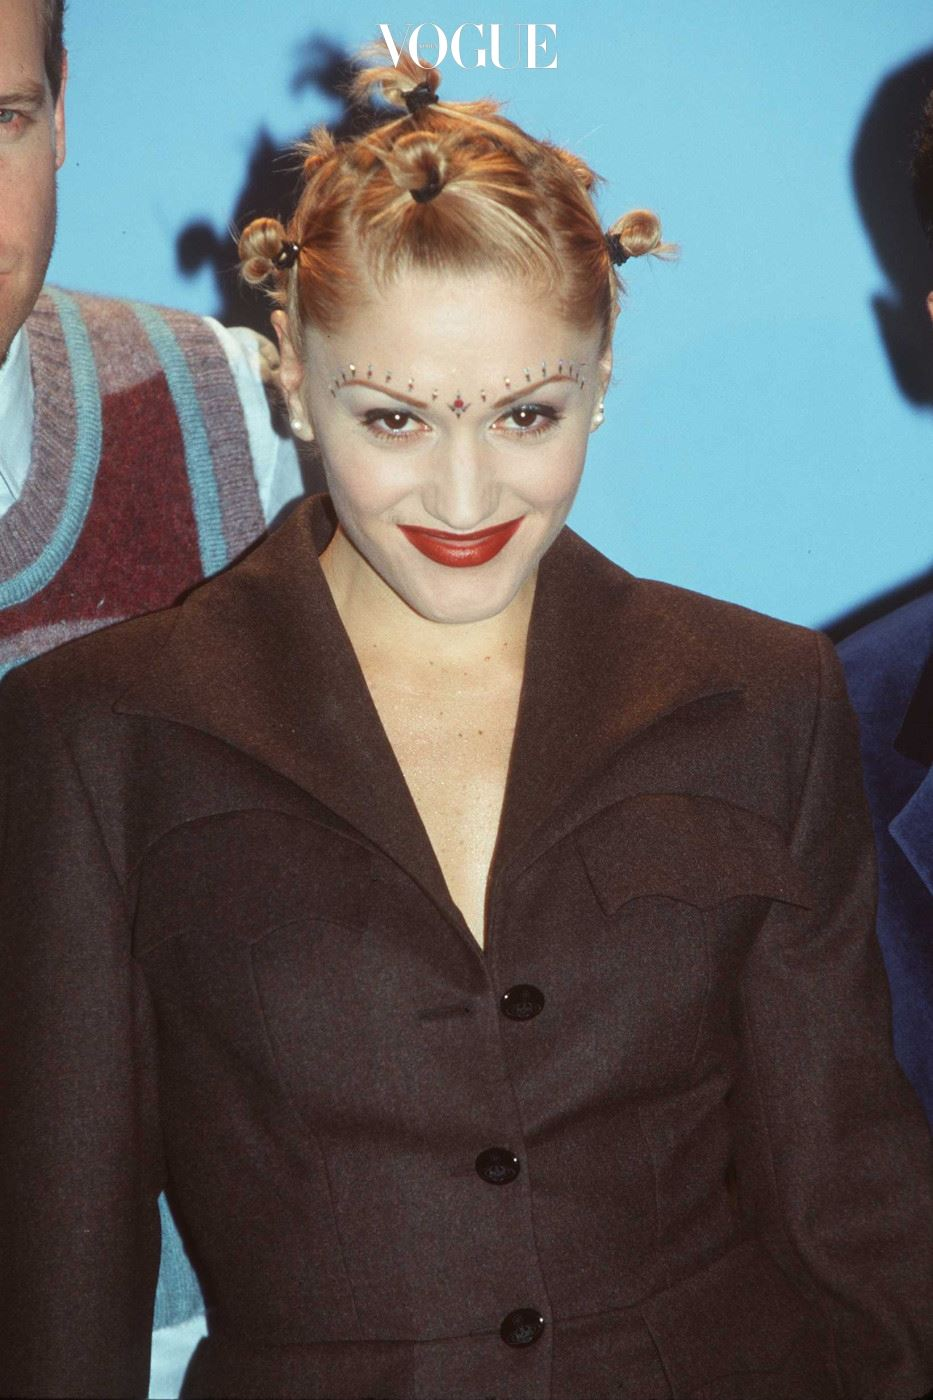 12/8/97 Las Vegas, NV. Gwen Stefani of No Doubt at the 1997 Billboard Music Awards.